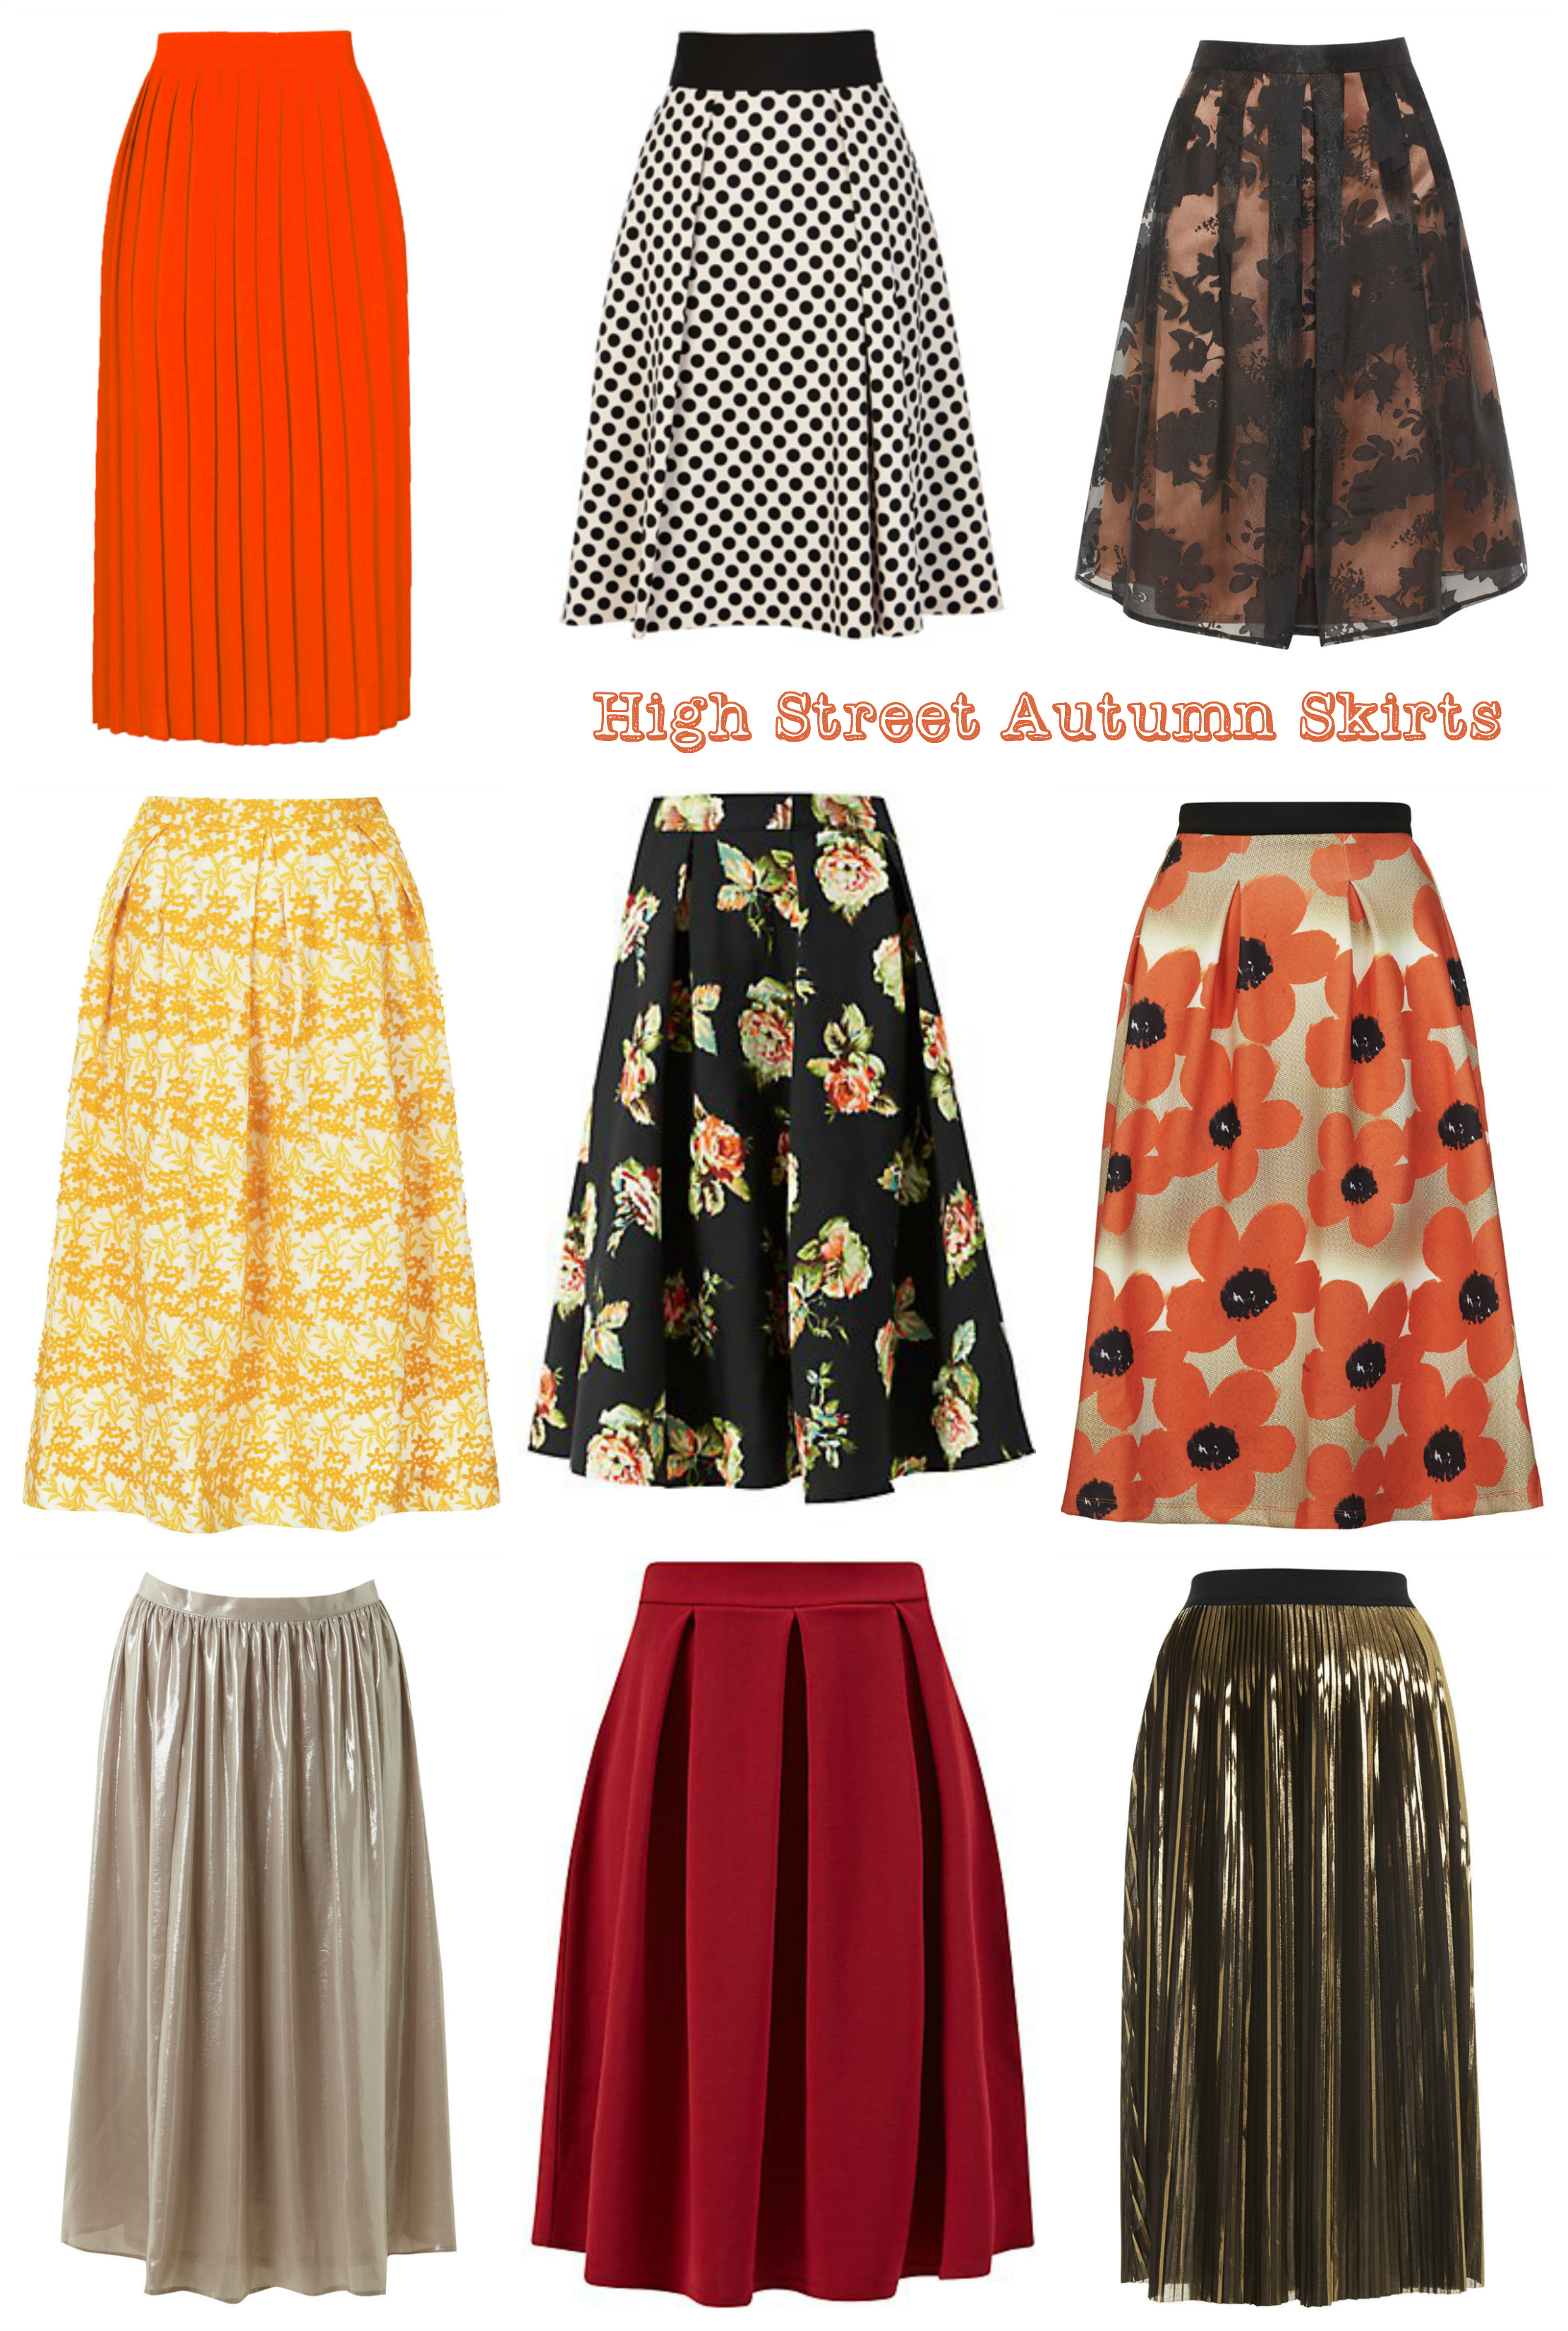 My Favourite High Street Autumn Skirts